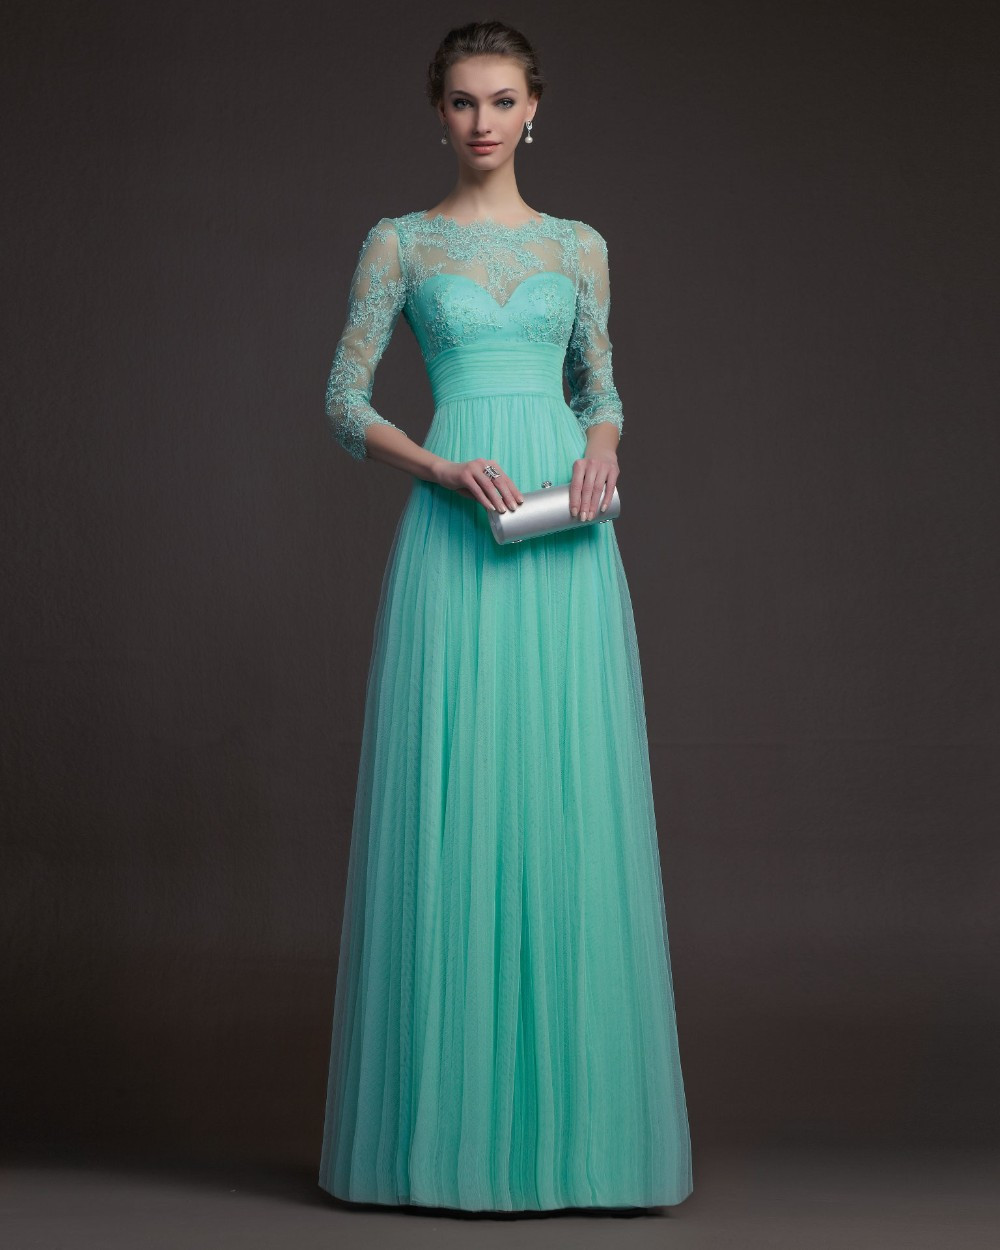 Free Shipping Turquoise Tulle Long Elegant Lace Evening Dress With Sleeves Prom Formal Gown Sarah Bridal 2014 New Arrival